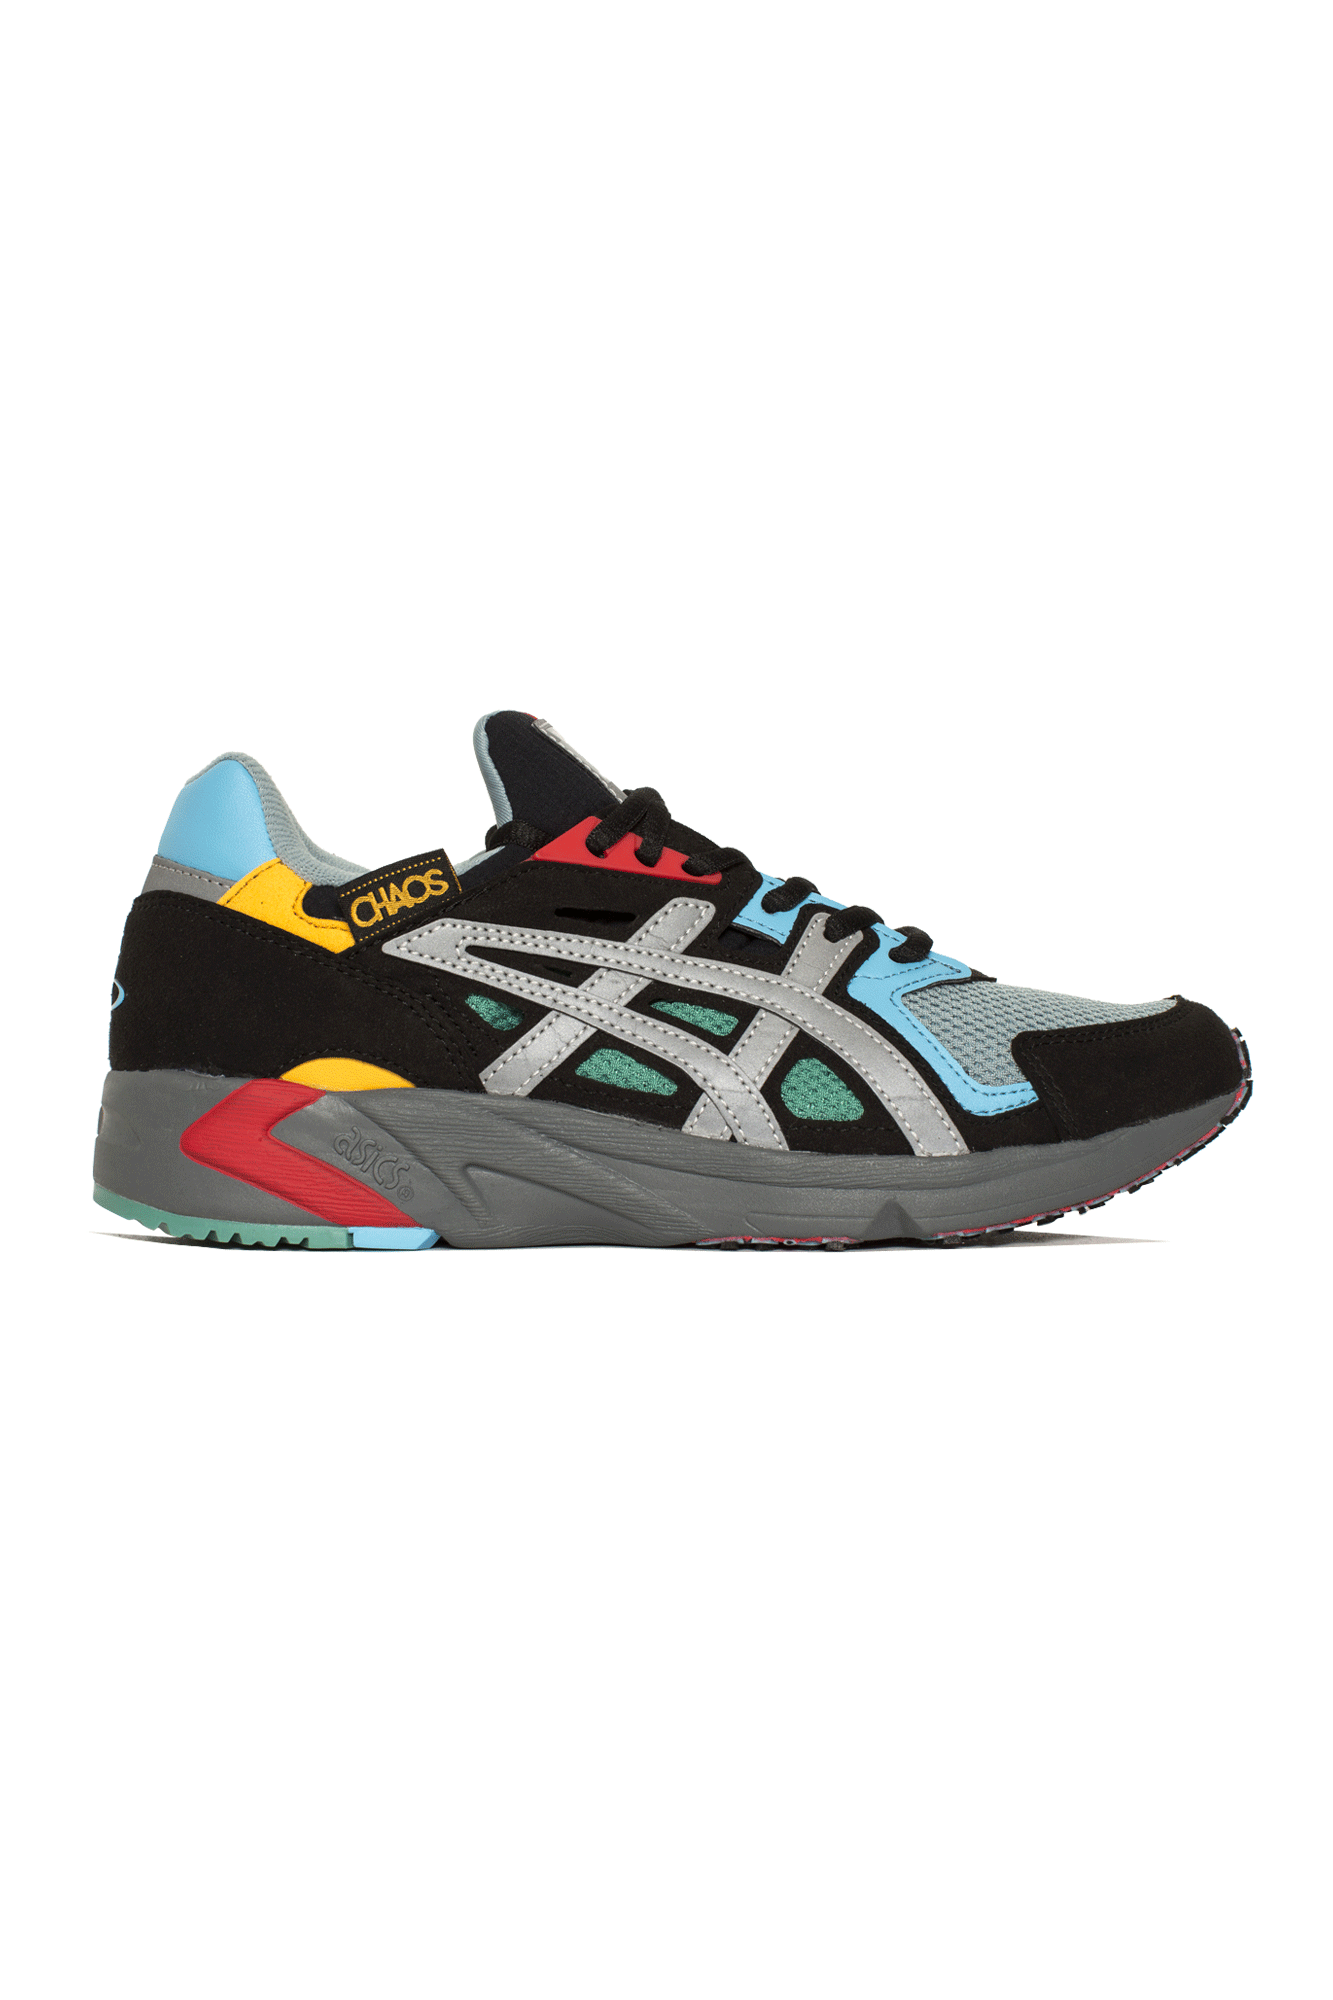 Sneakers Asics Gel-Ds Trainer OG x Vivienne Westwood Black - One Block Down